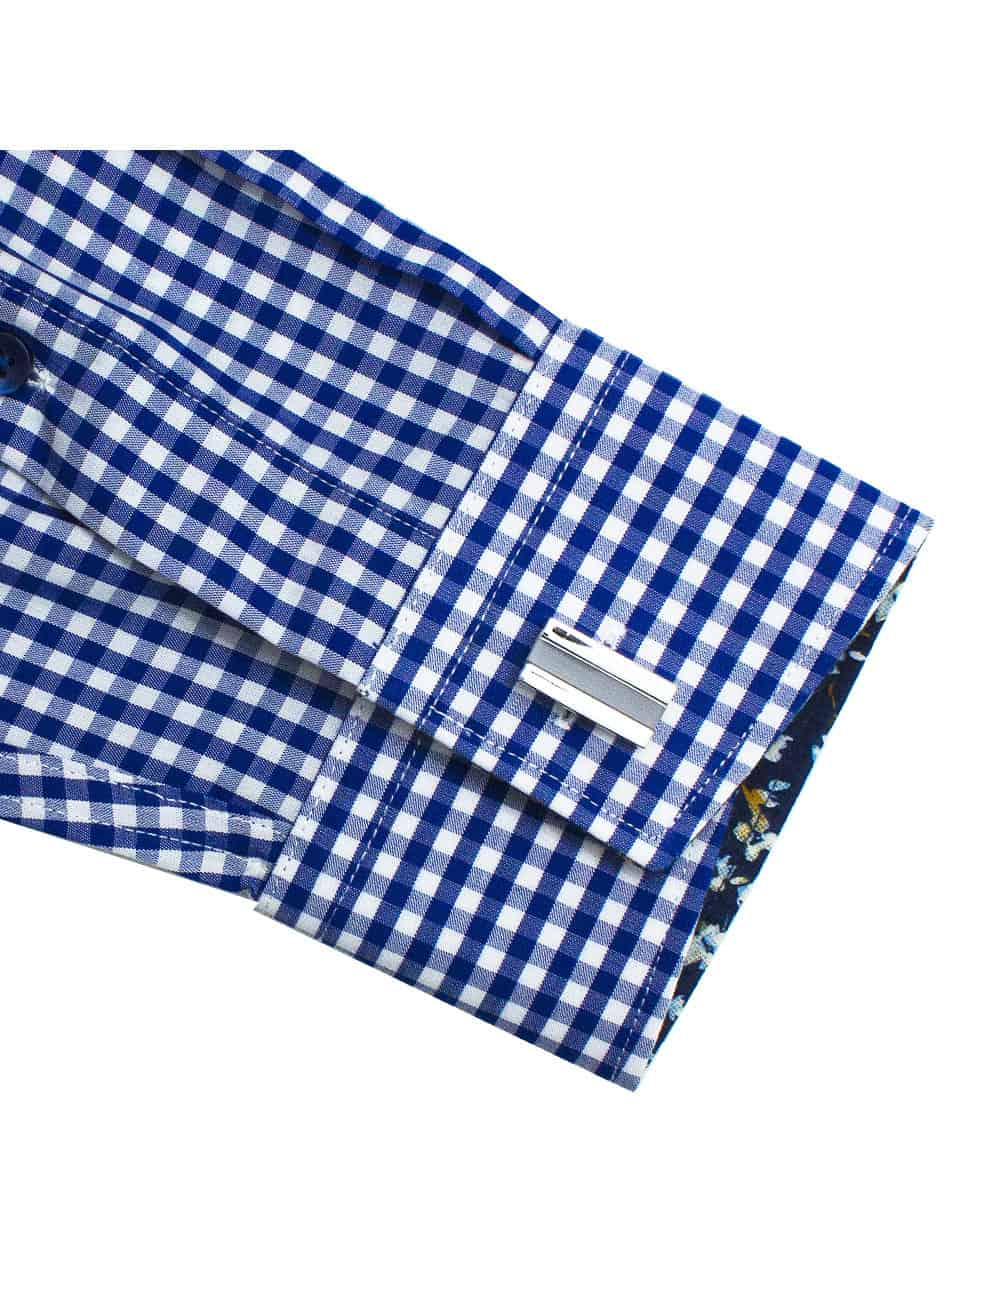 Tailored Fit Eco-ol Bamboo Blend Wrinkle Free Blue Checks Long Sleeve Single Cuff Shirt TF1C7.17